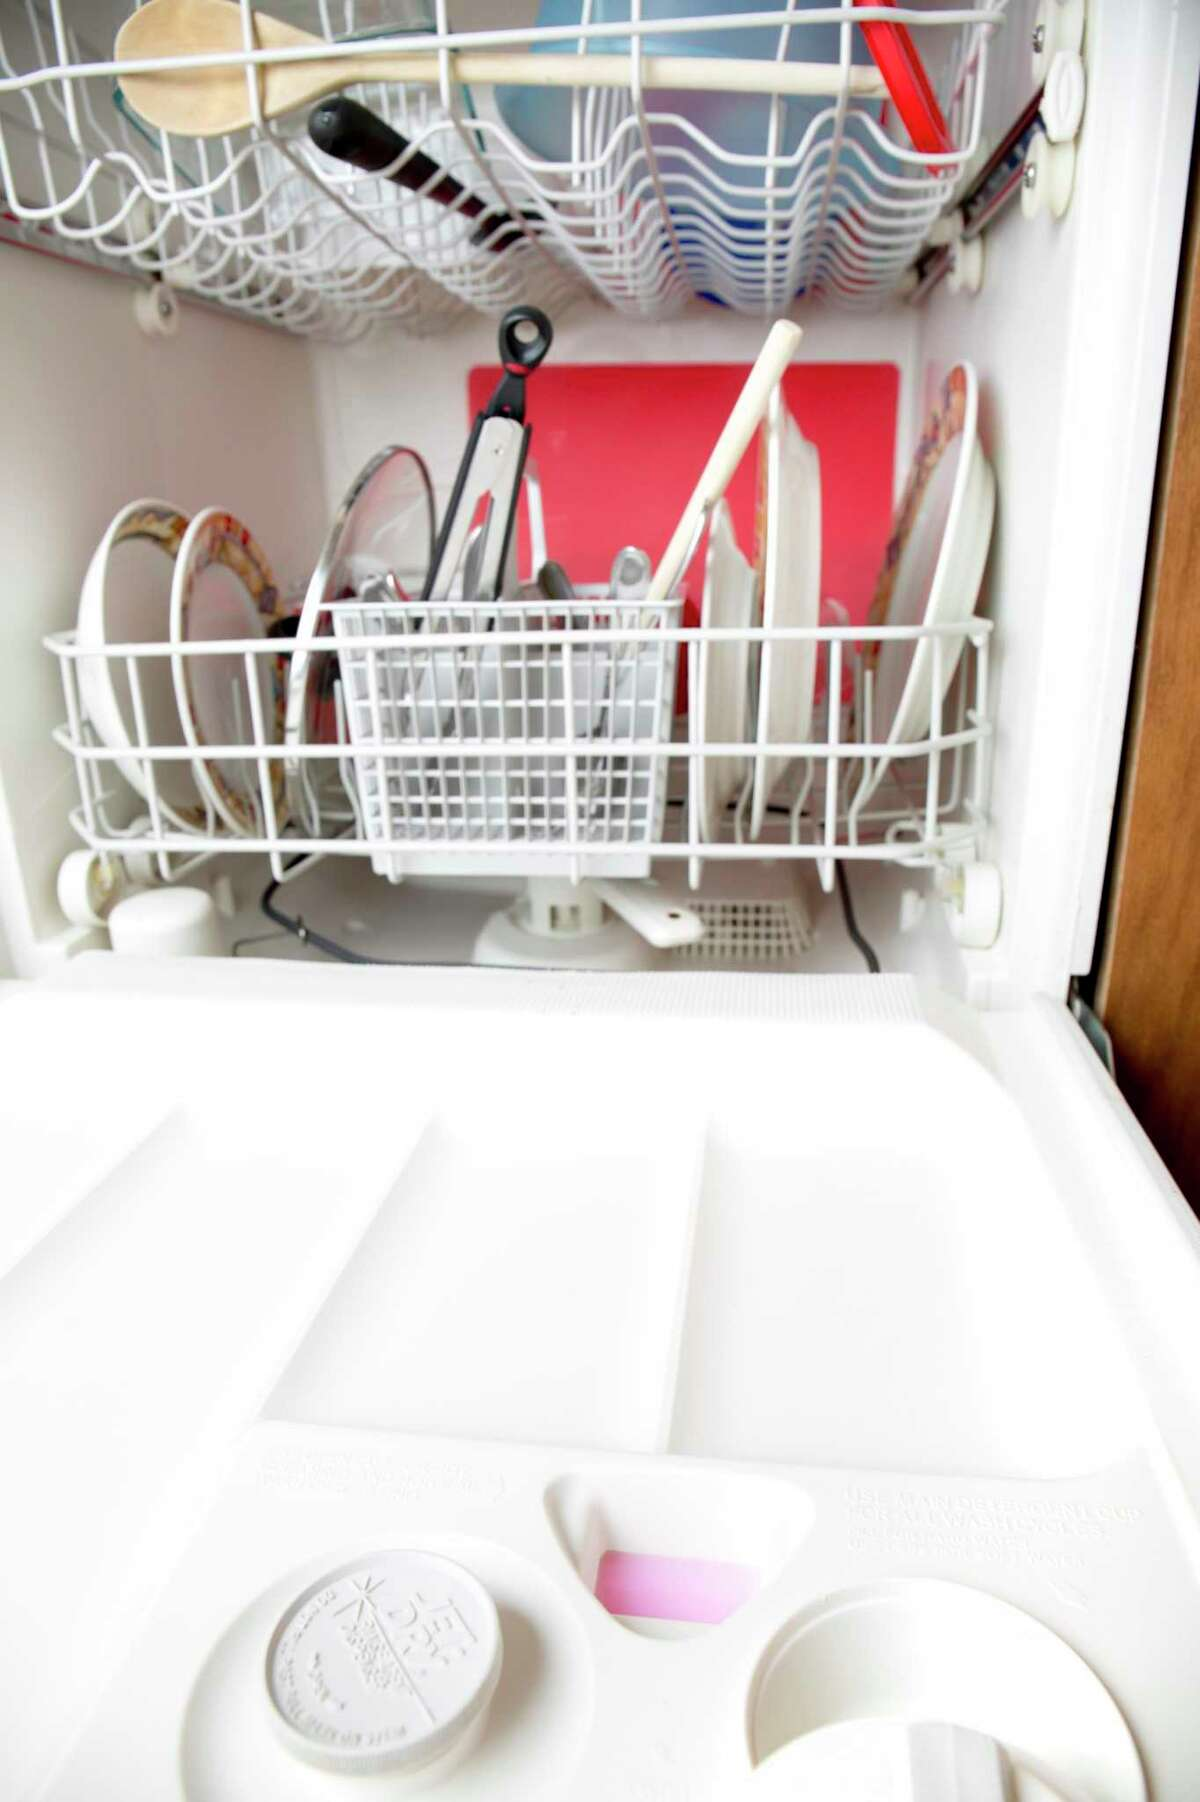 Run your dishwasher - as well as your washer and dryer - in early morning or after sundown.